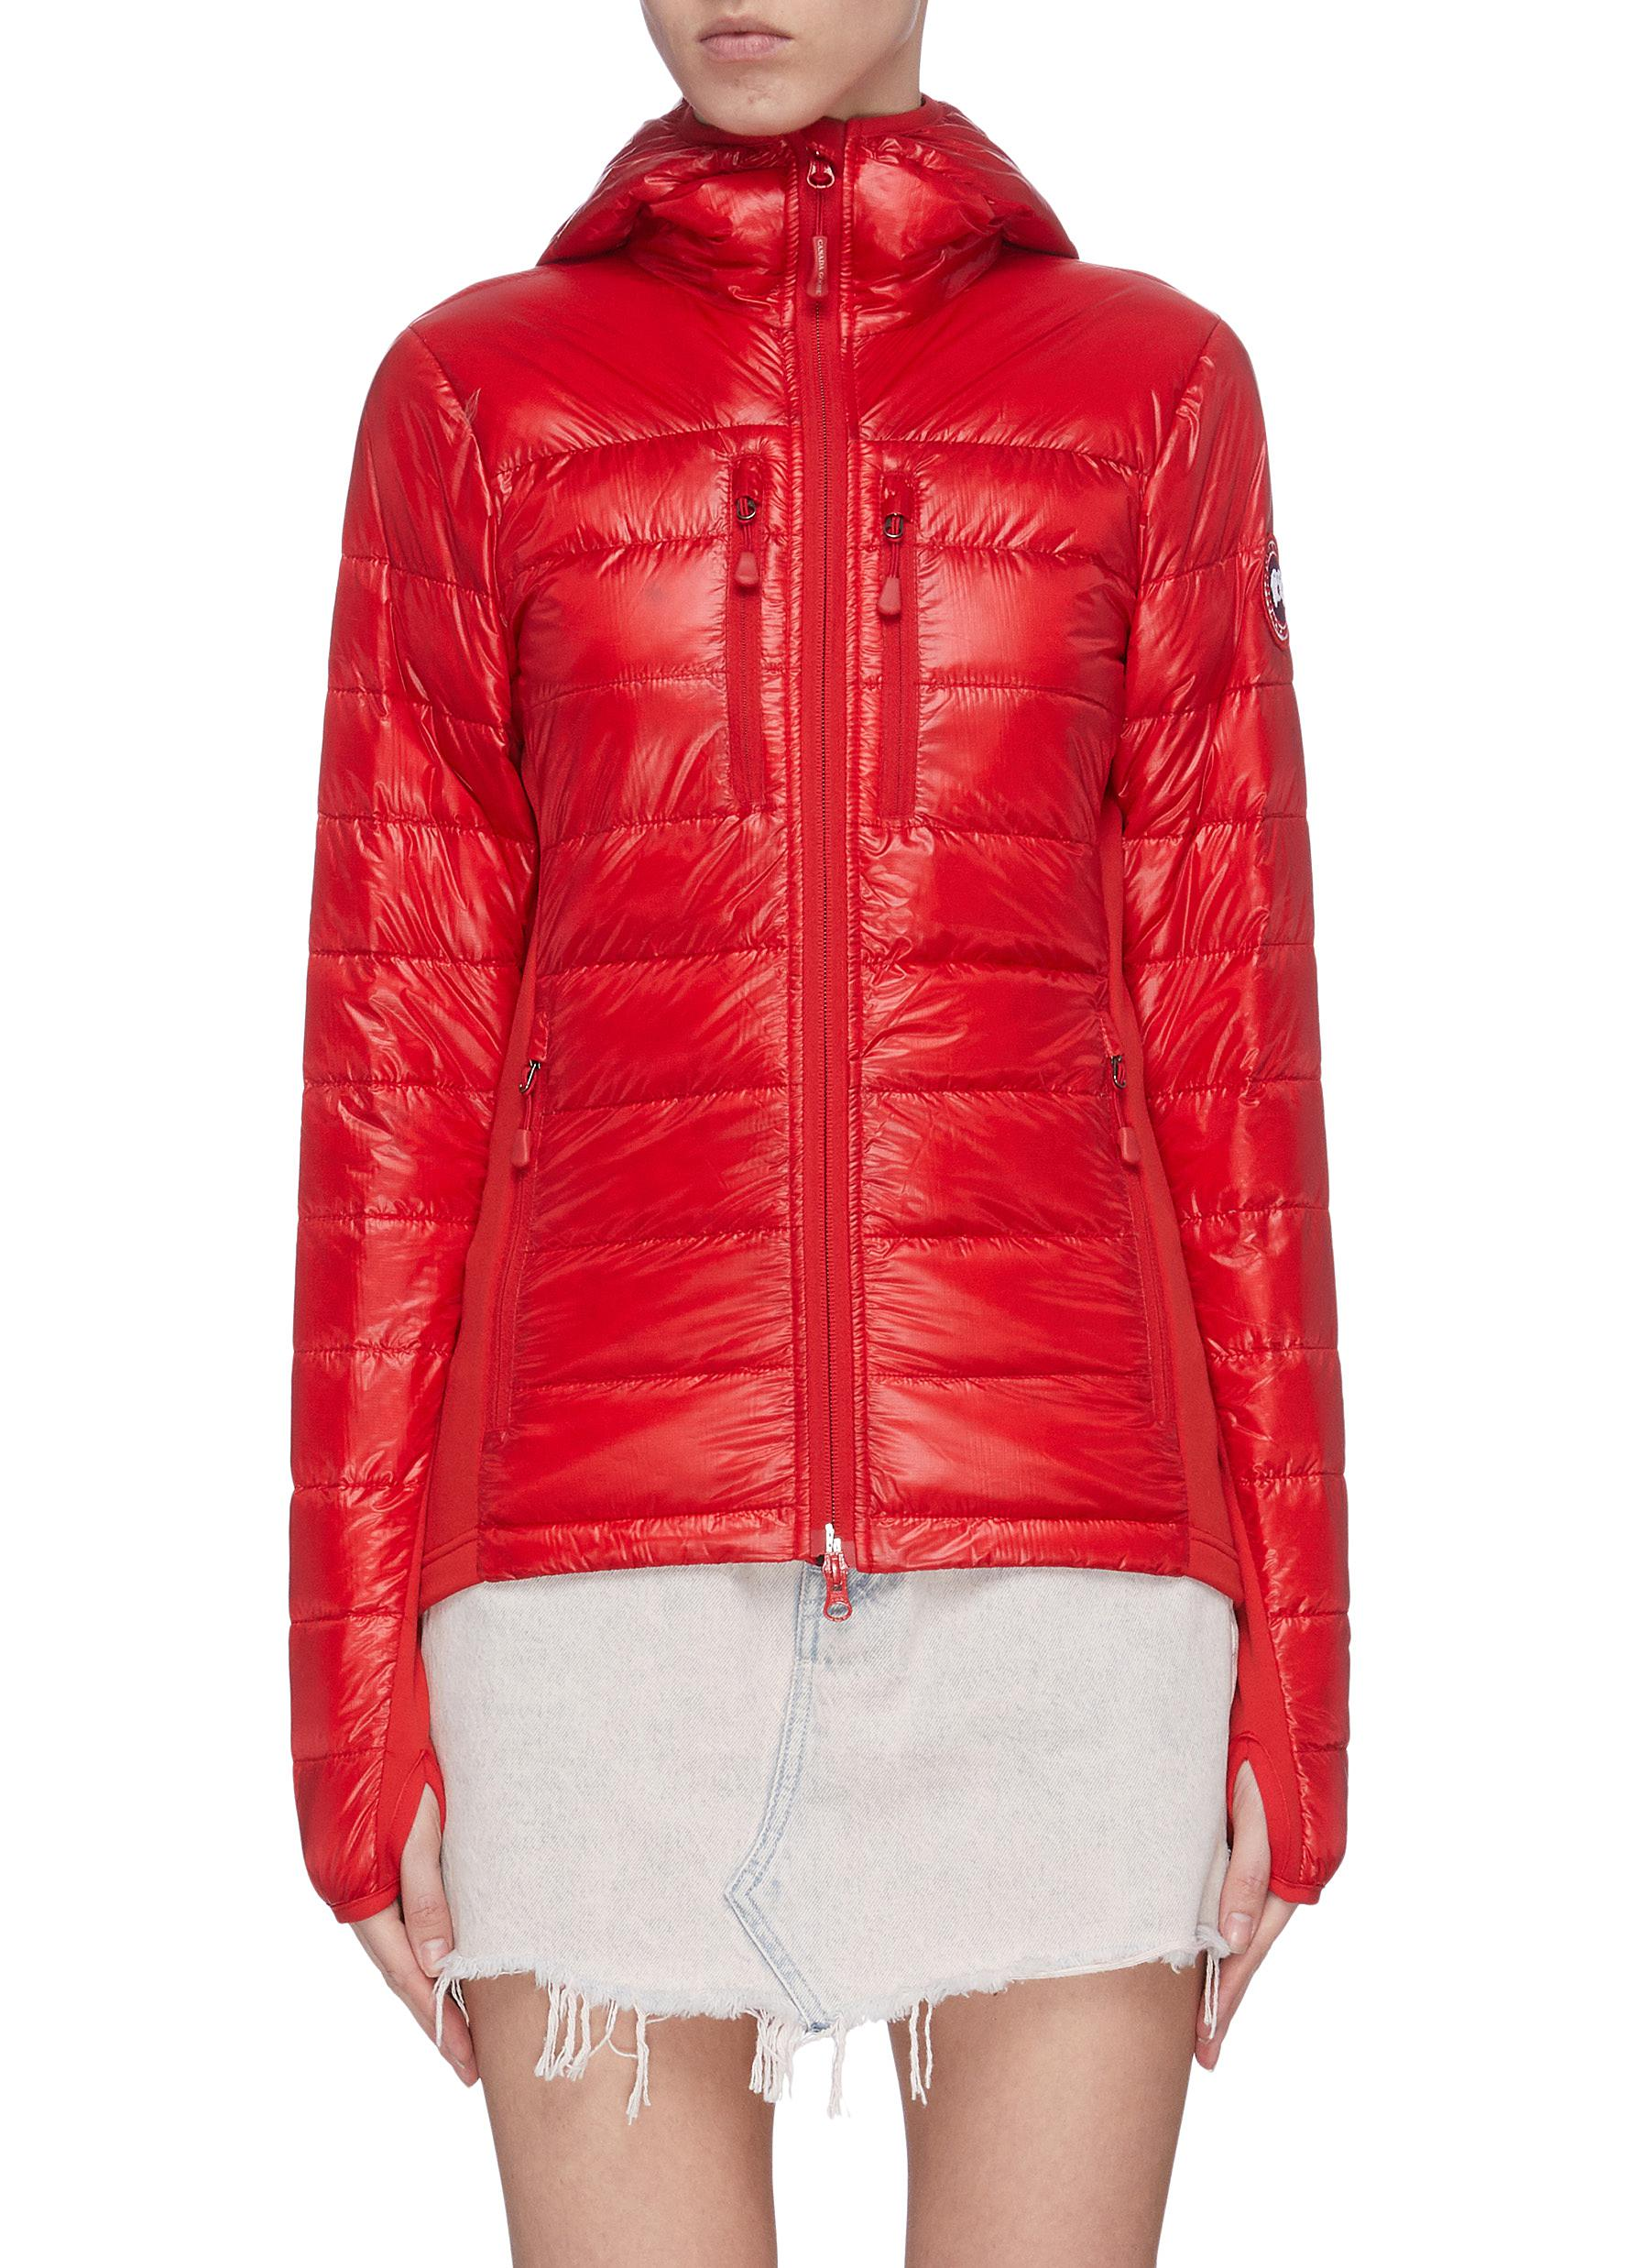 Buy Canada Goose Jackets 'Hybridge Lite' hooded puffer jacket